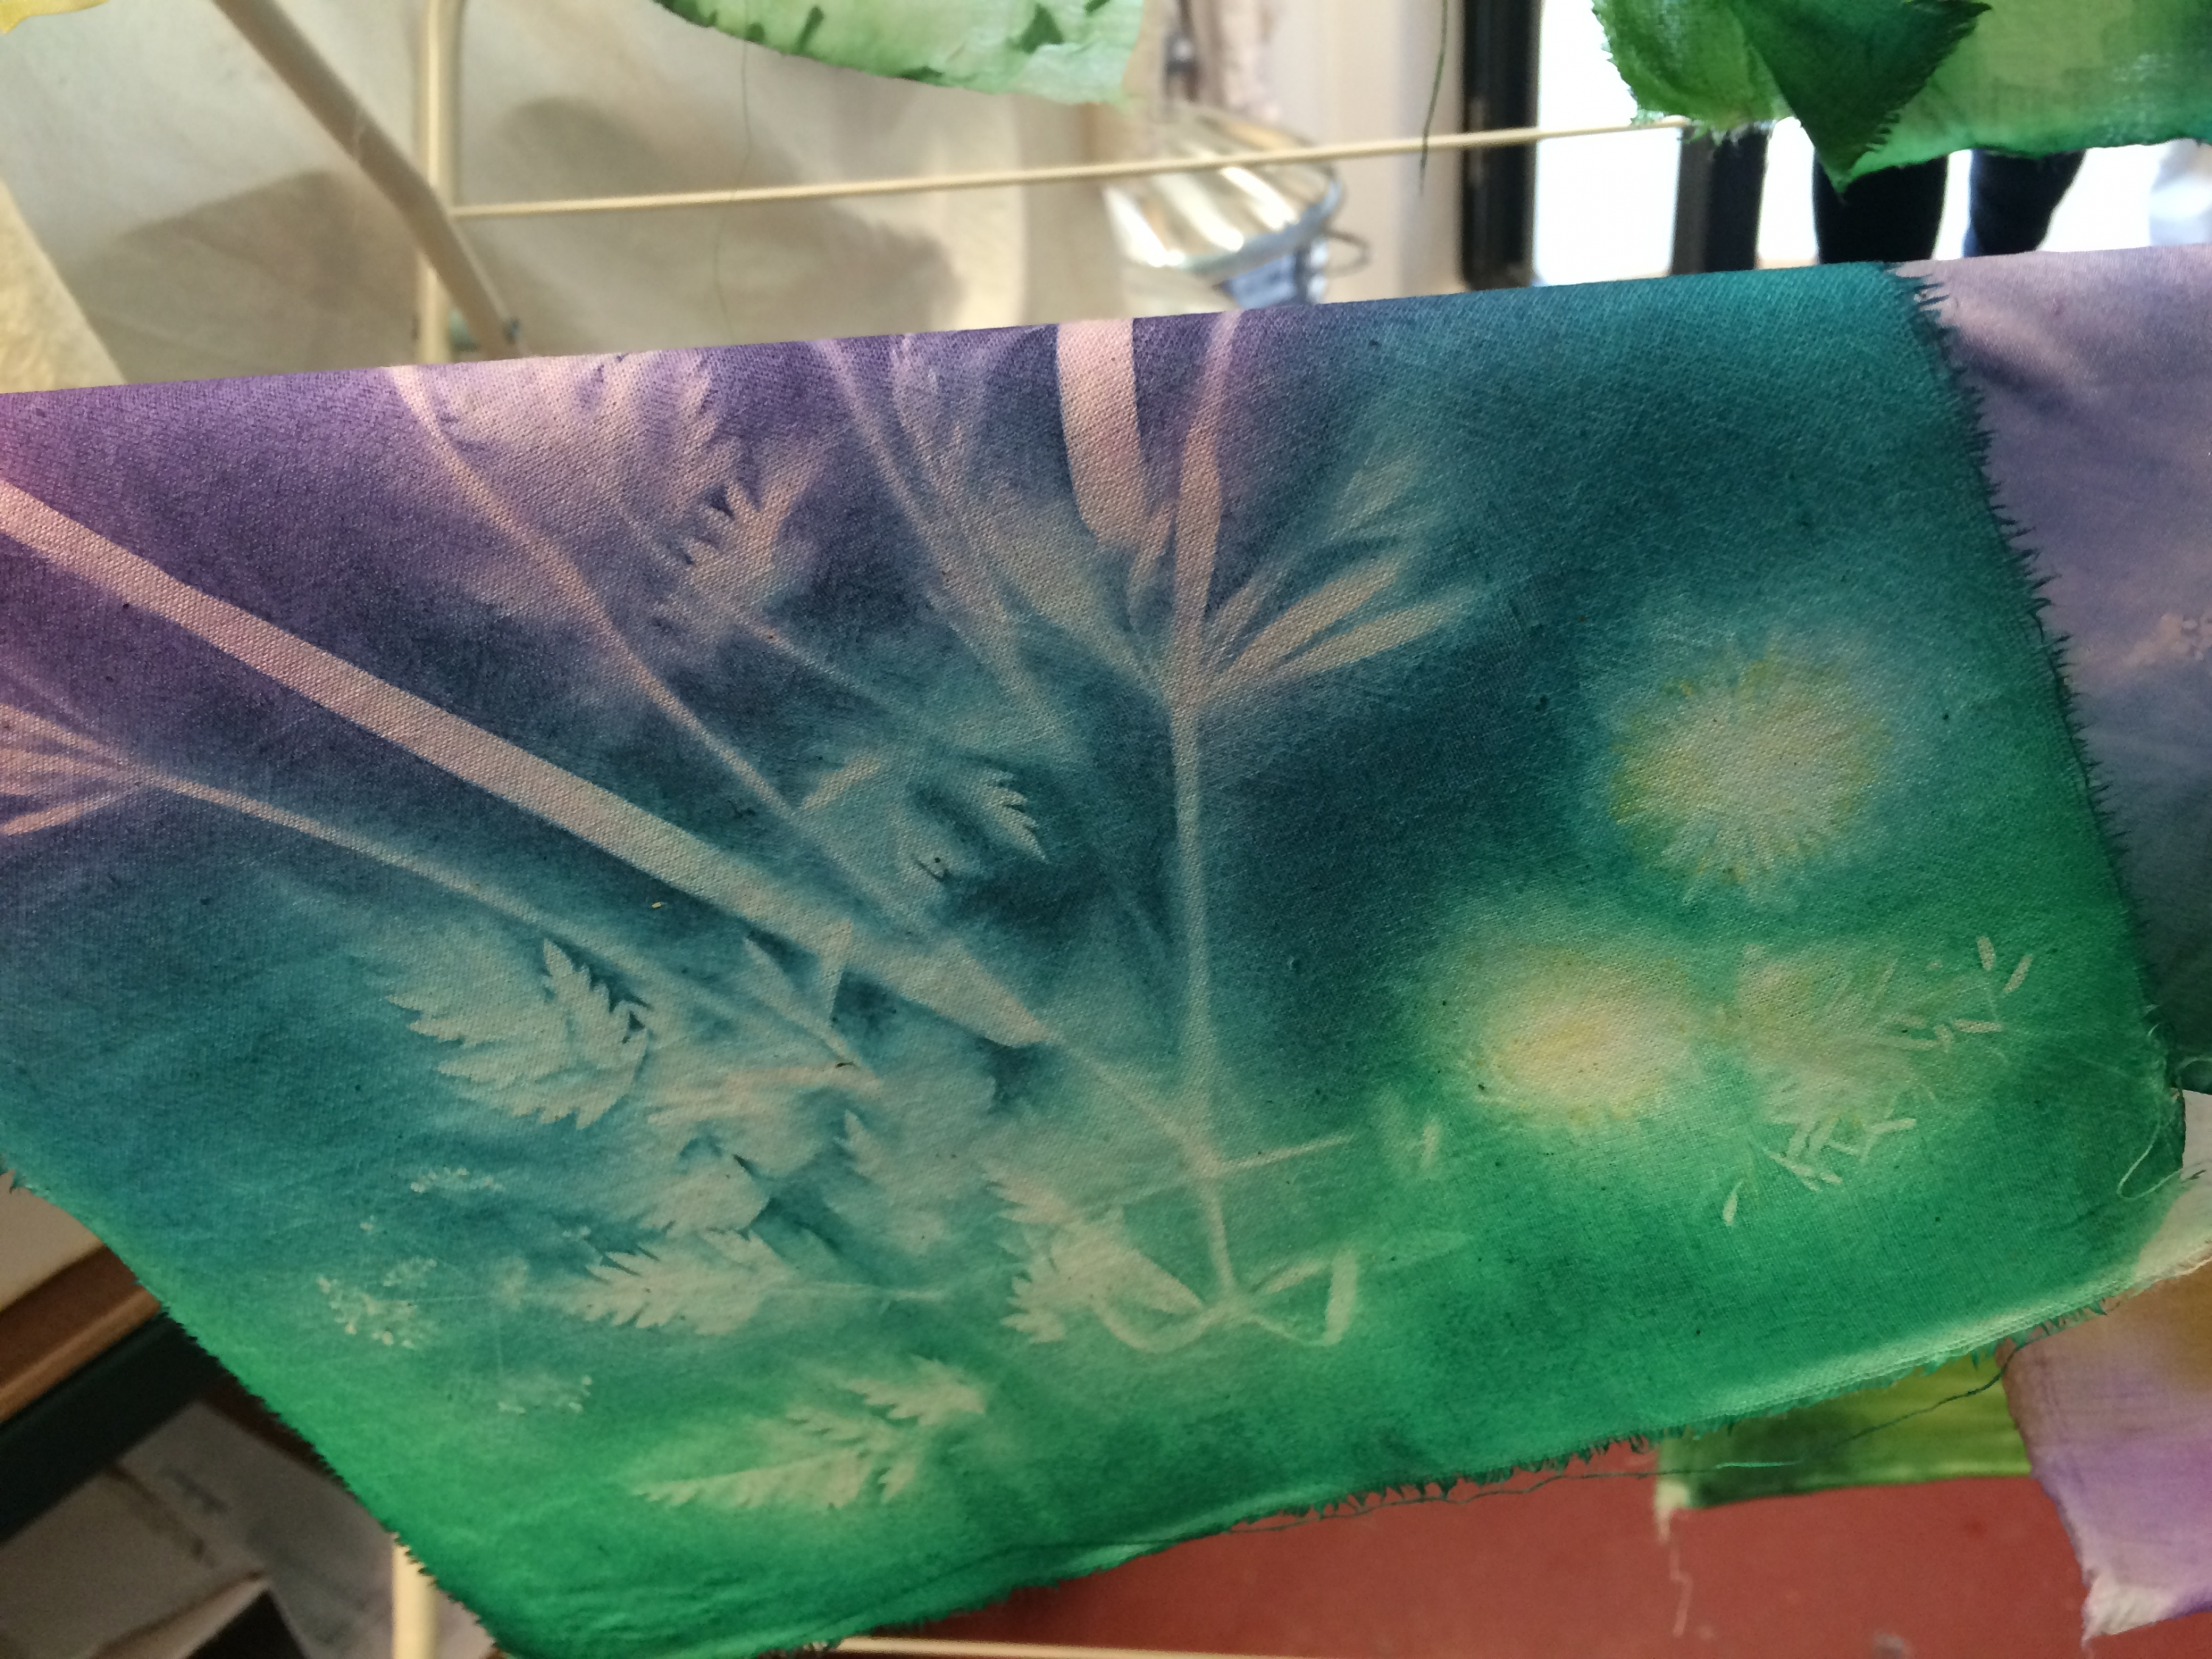 Sun bleaching Textiles & Mixed Media course with Gill Collinson at Cambridge Art Makers